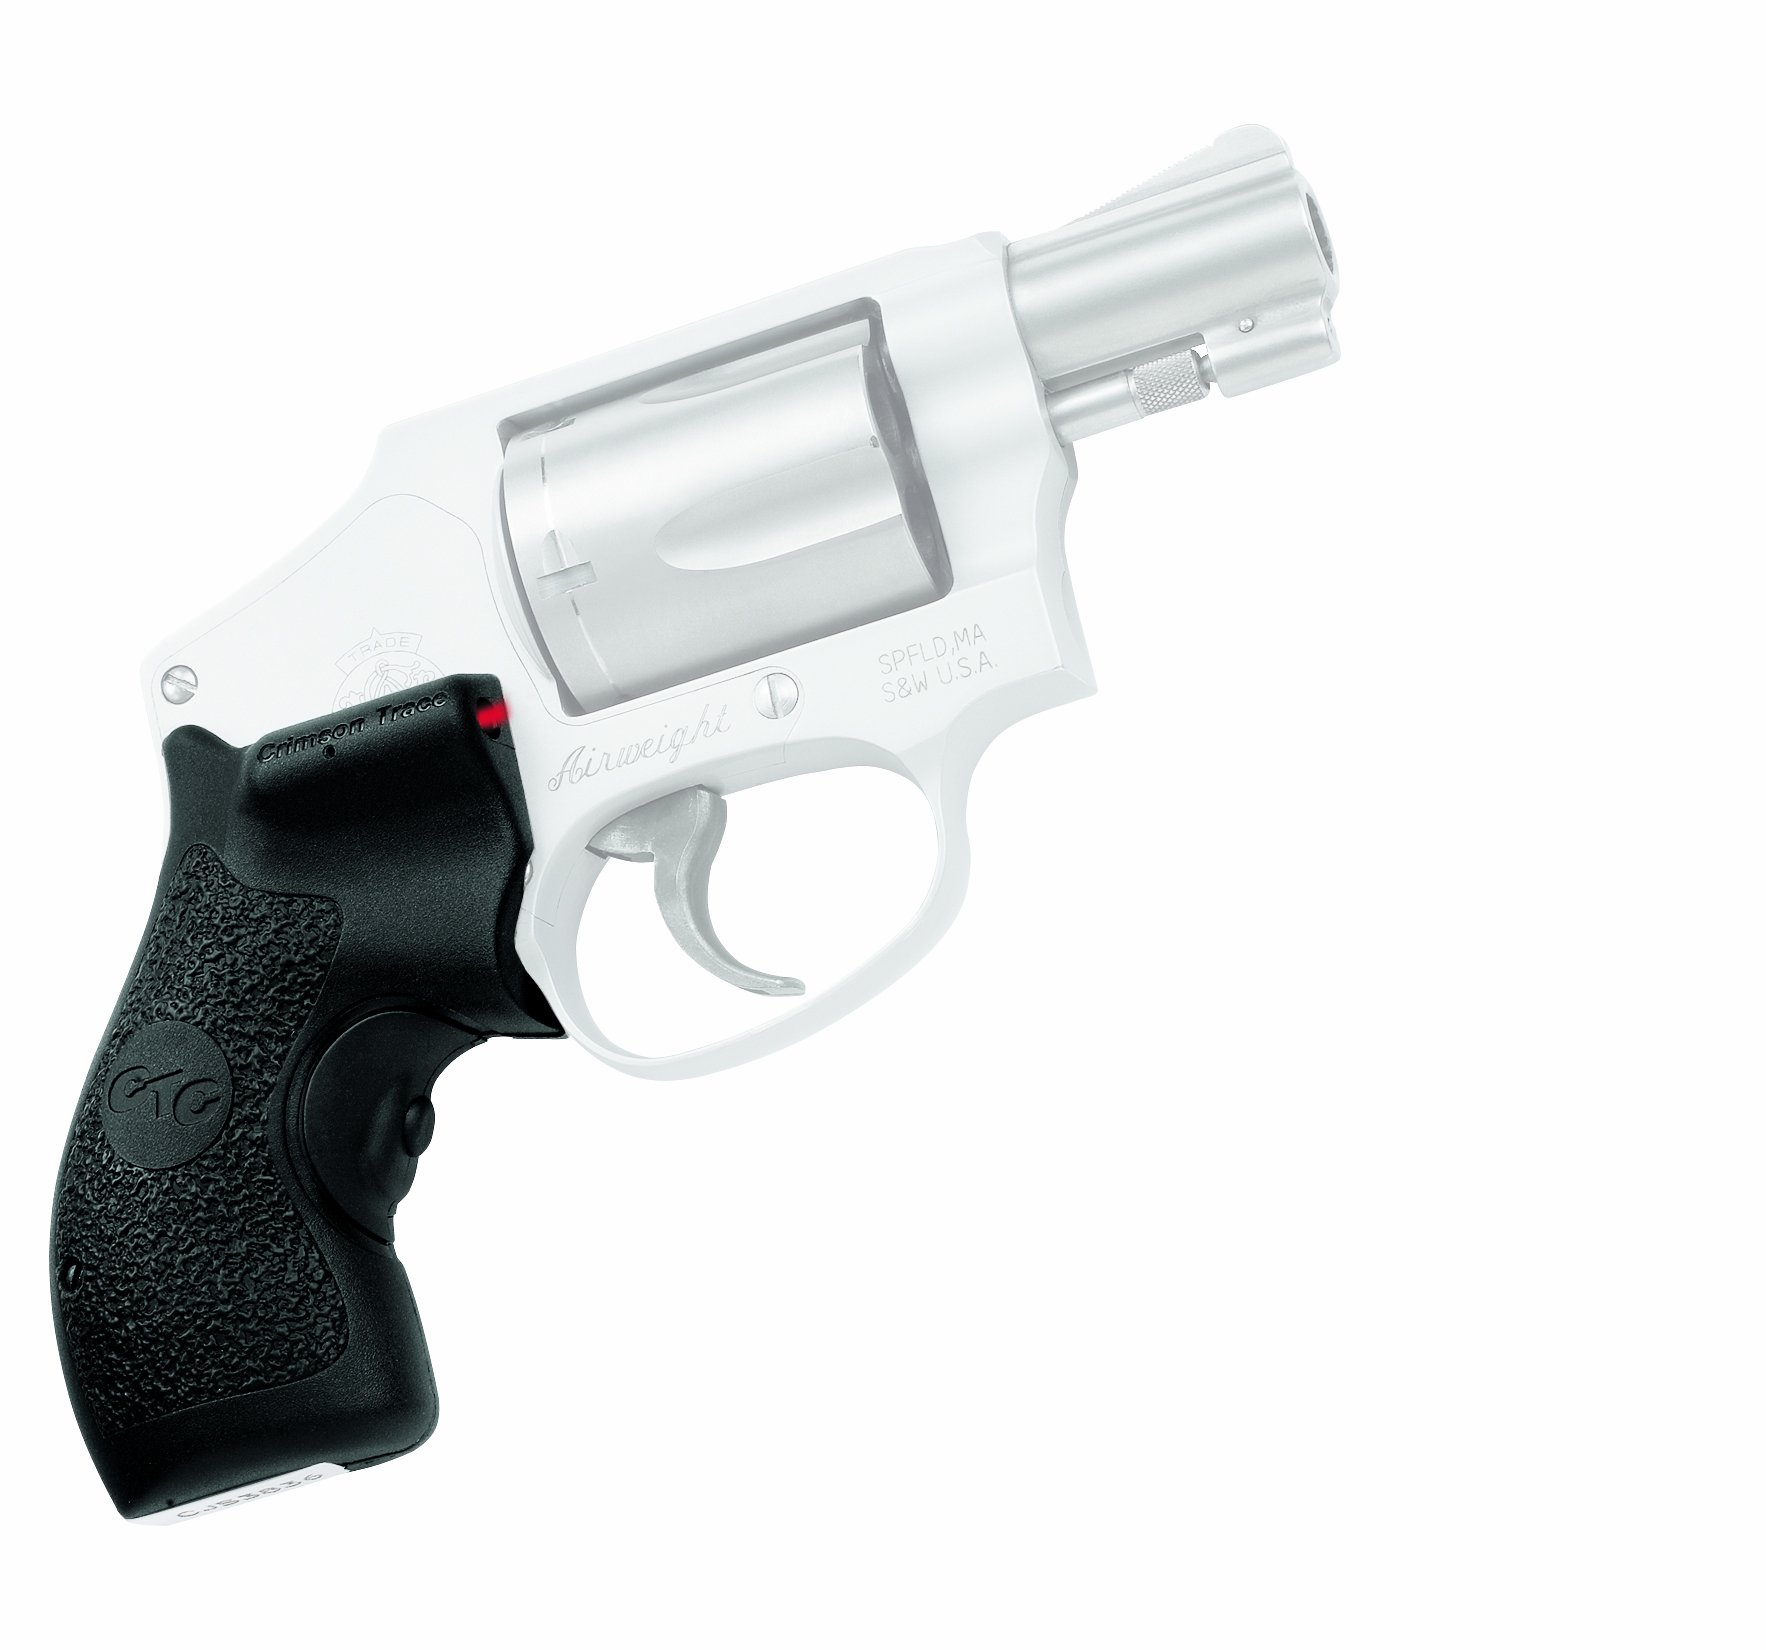 Crimson Trace LG-105 Lasergrips Red Laser Sight Grips for Smith & Wesson J-Frame (Round Butt) Revolvers by Crimson Trace